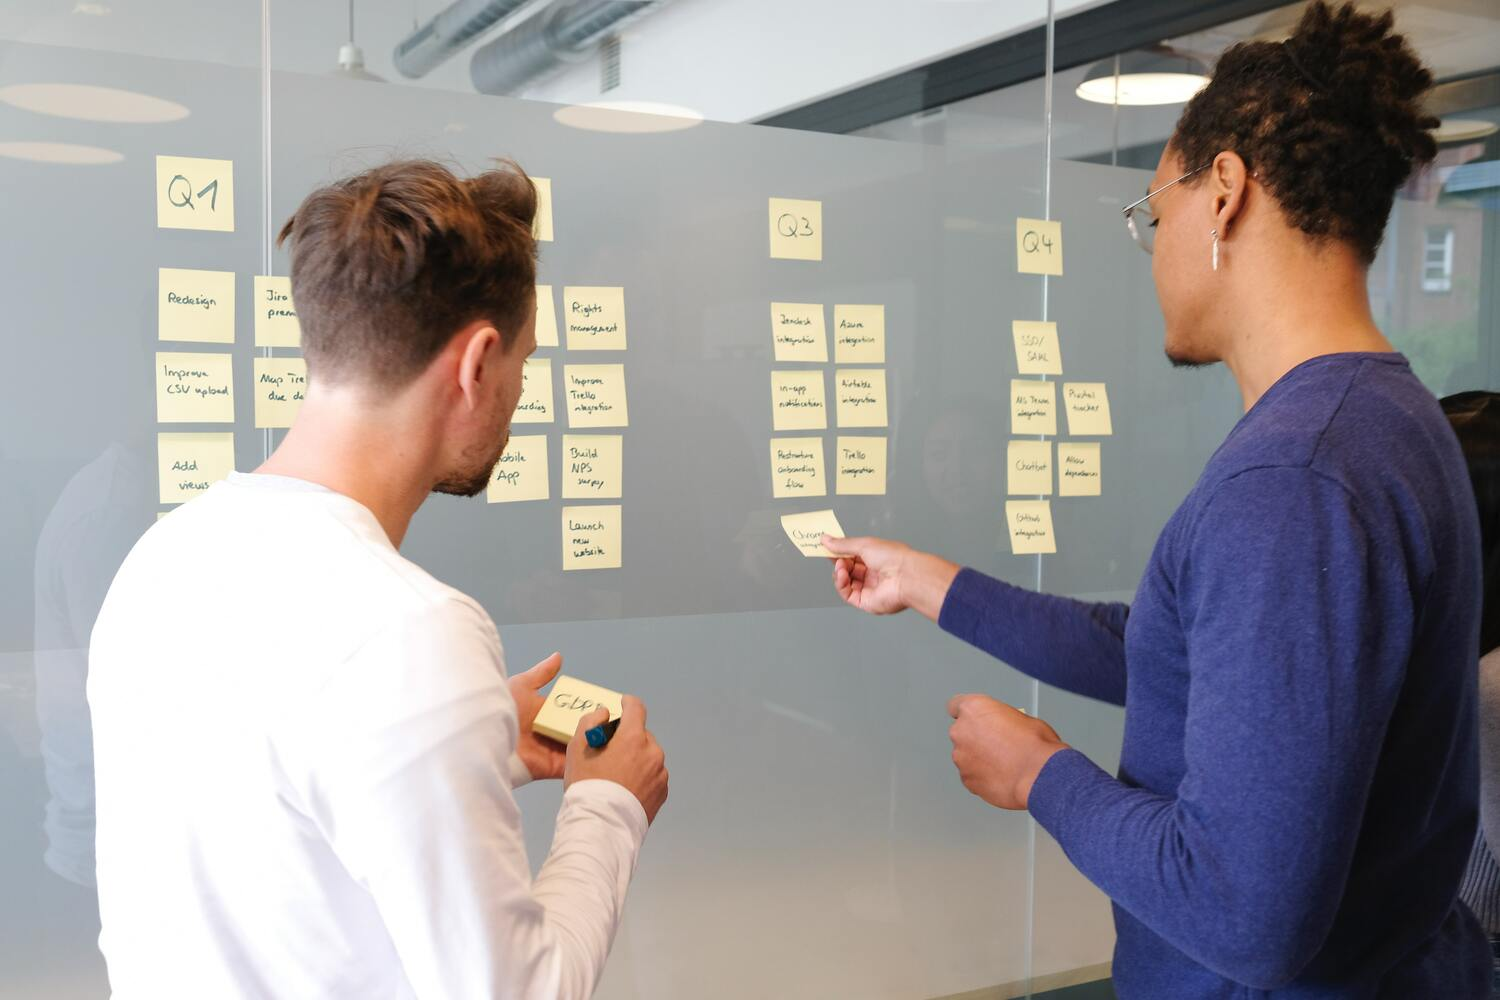 Two coworkers layout sticky notes on a board to prioritize things to achieve each quarter's goals